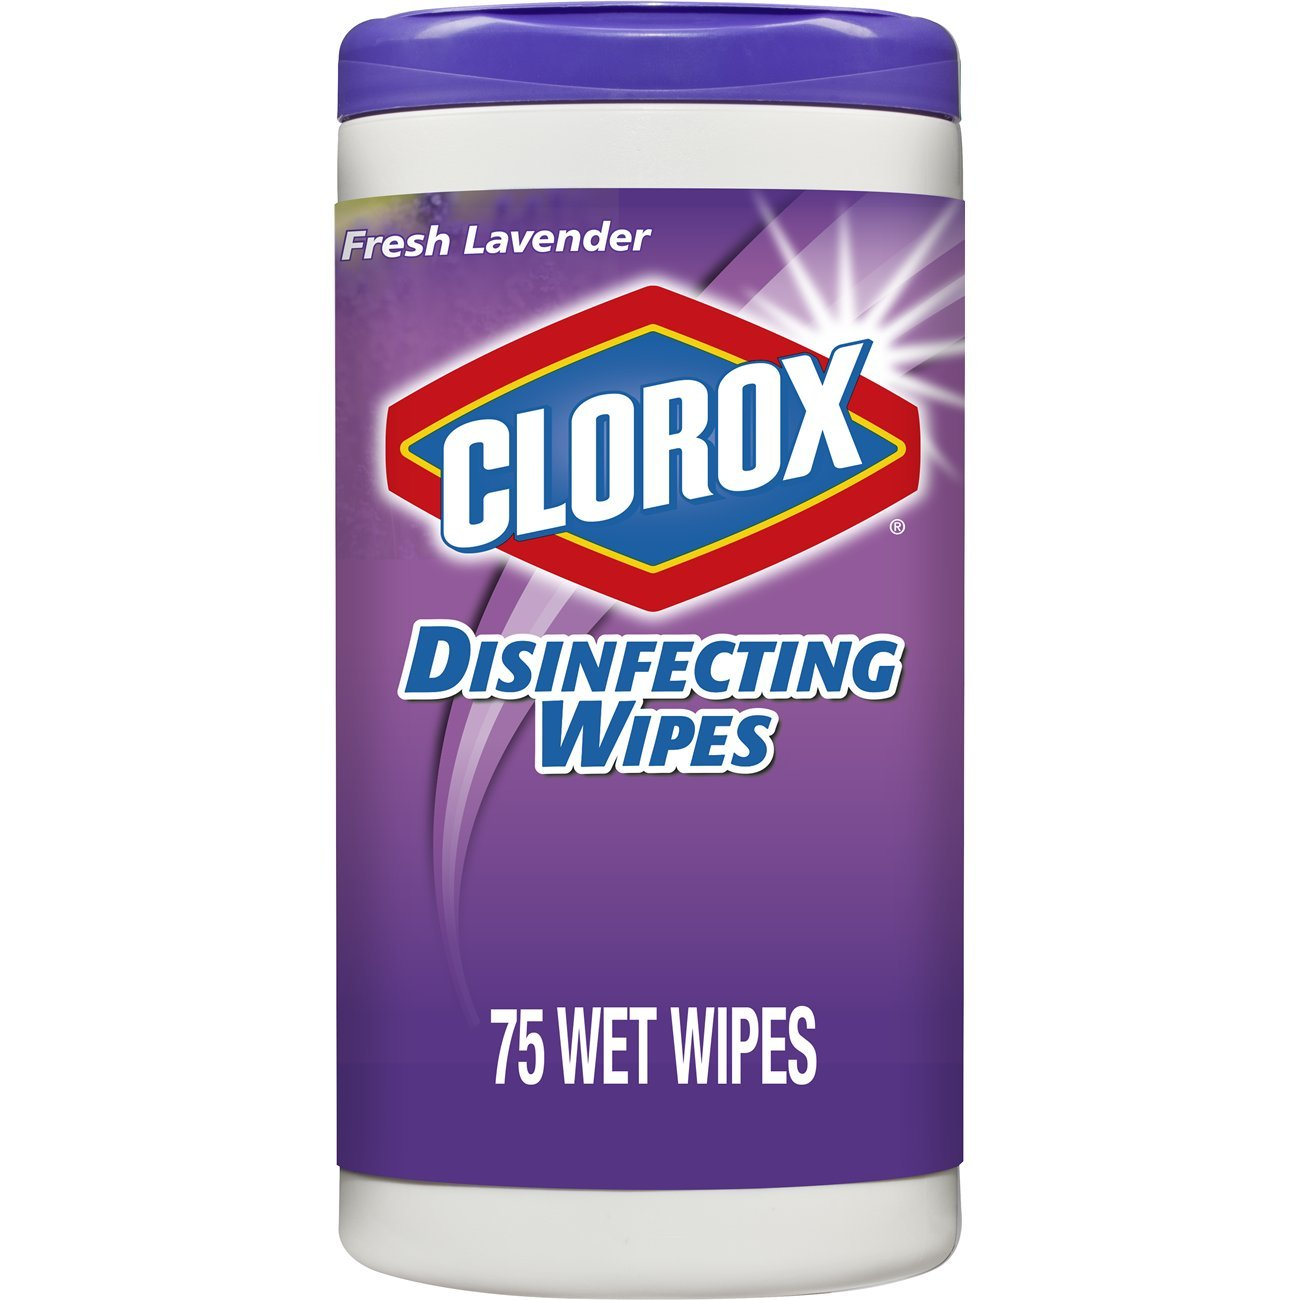 Clorox Disinfecting Wipes, Bleach Free Cleaning Wipes - Fresh Lavender, 75 Count (Pack of 6) by Clorox (Image #10)